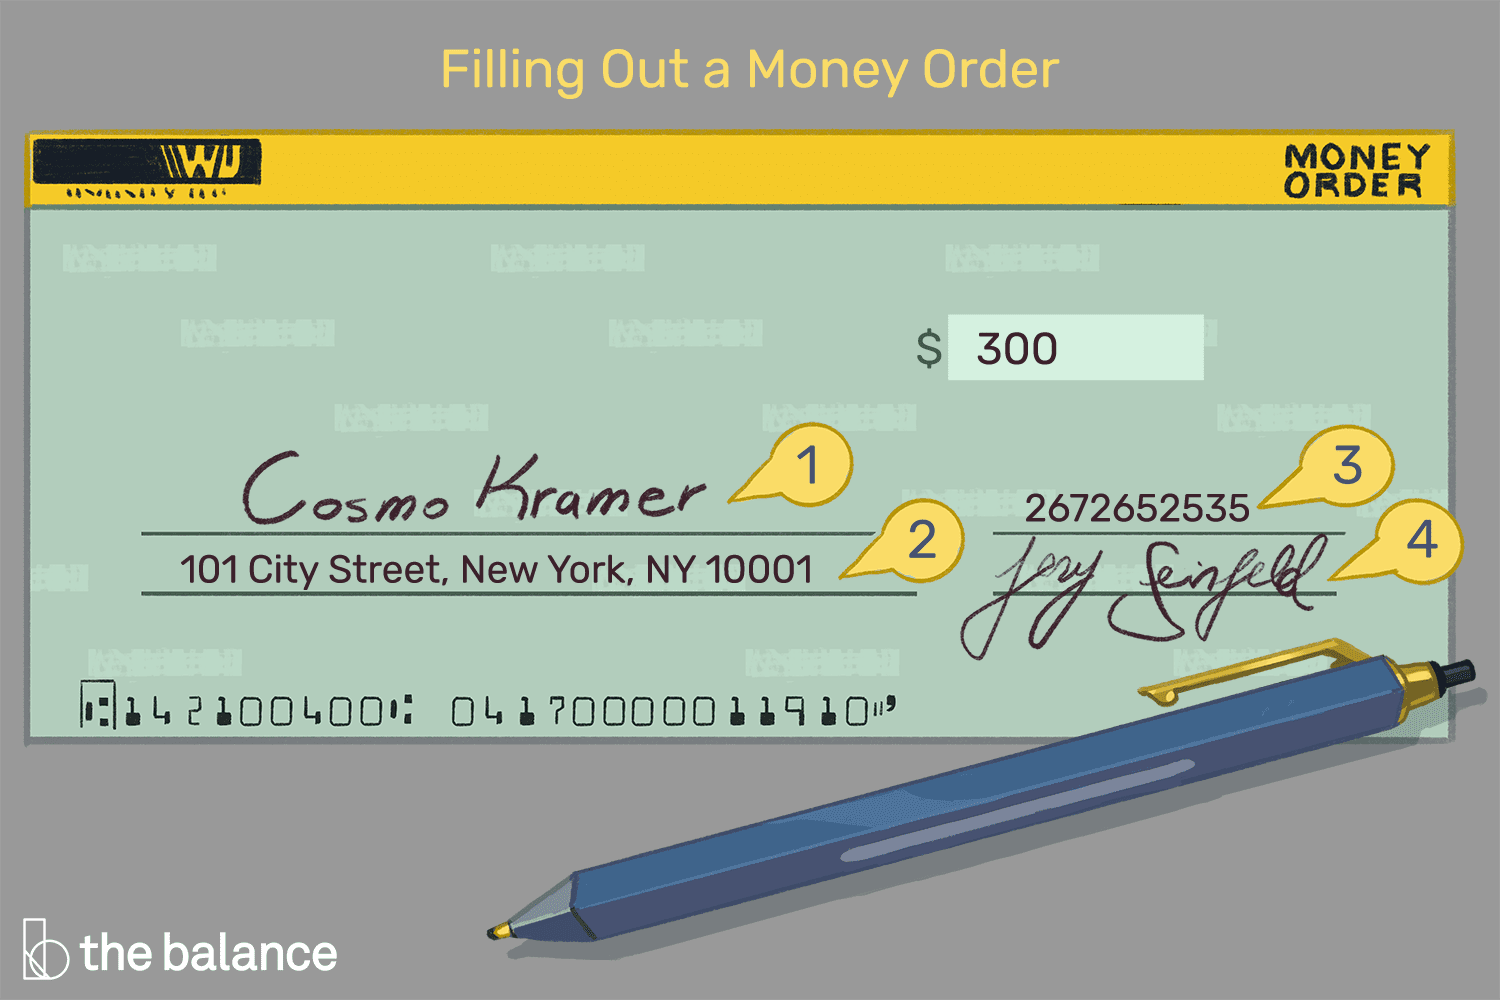 Guide to Filling Out a Money Order